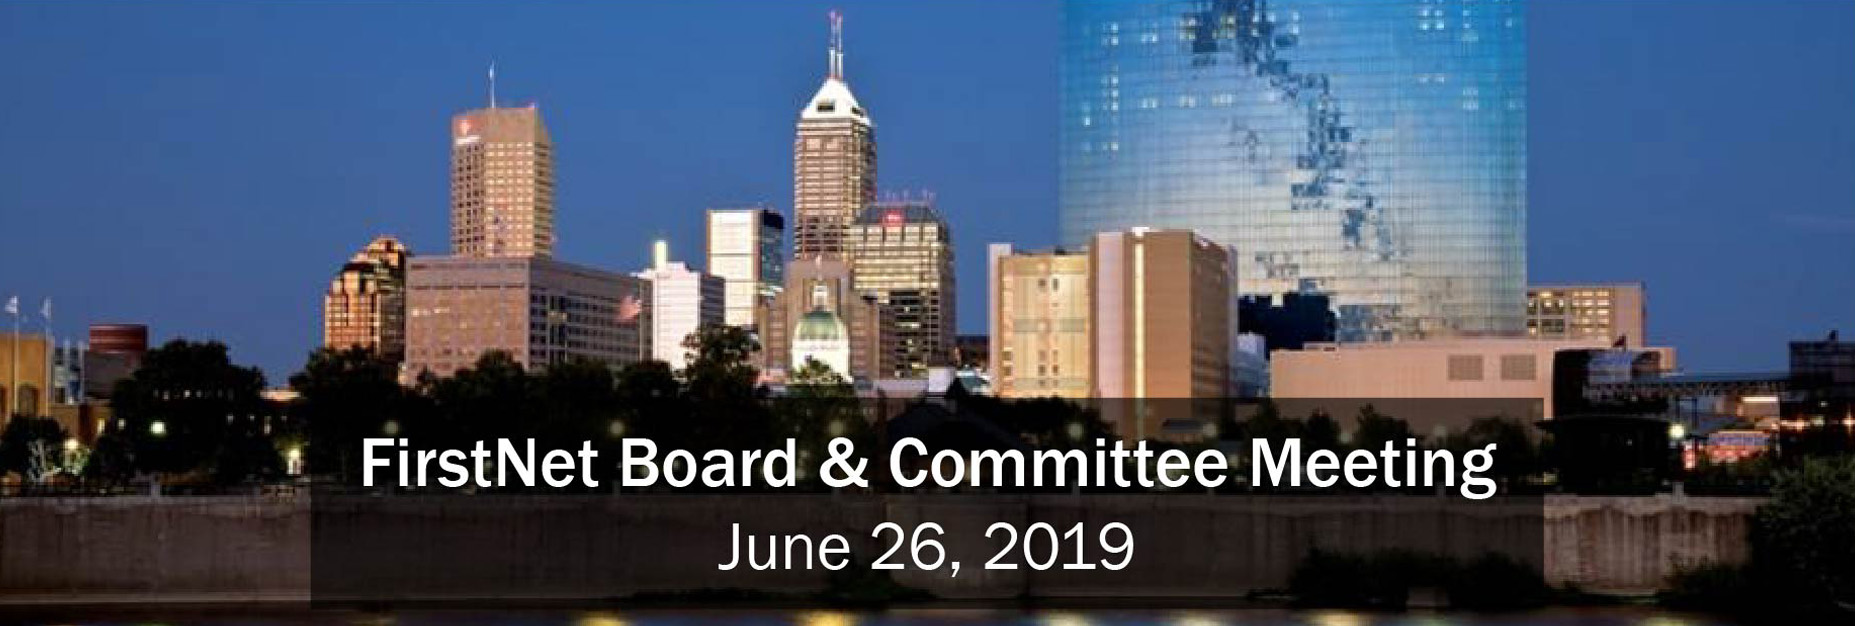 "The words ""FirstNet Board & Committee Meeting June 26, 2019"" above a skyline of Indianapolis"